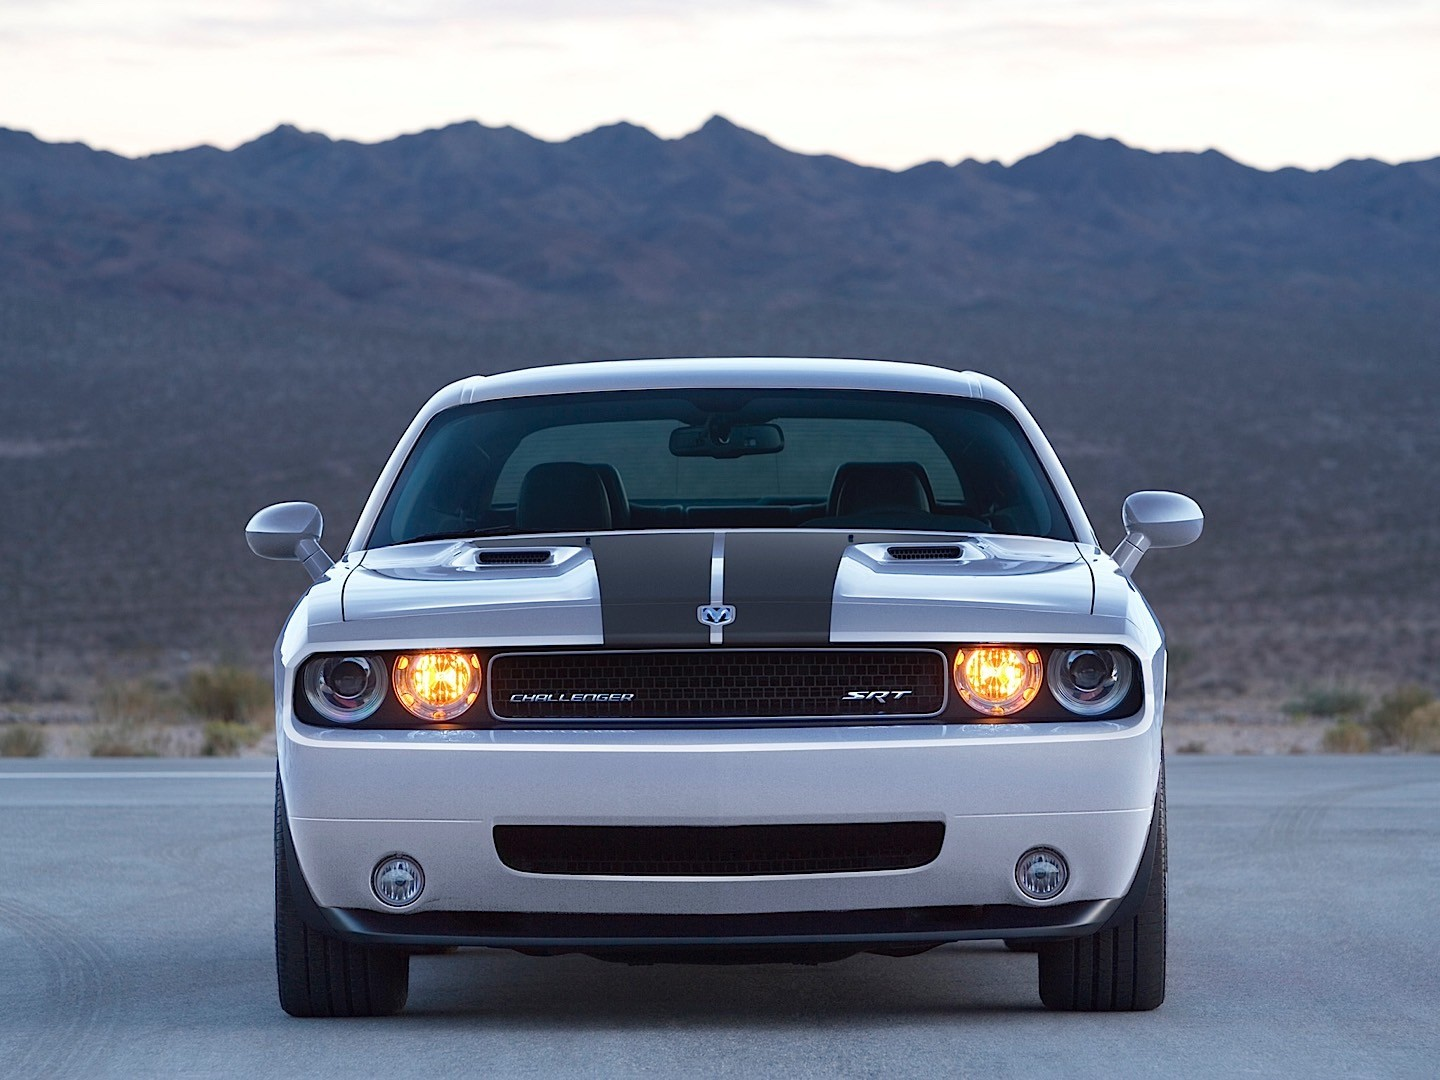 dodge challenger srt8 specs photos 2008 2009 2010 2011 2012 2013 autoevolution. Black Bedroom Furniture Sets. Home Design Ideas